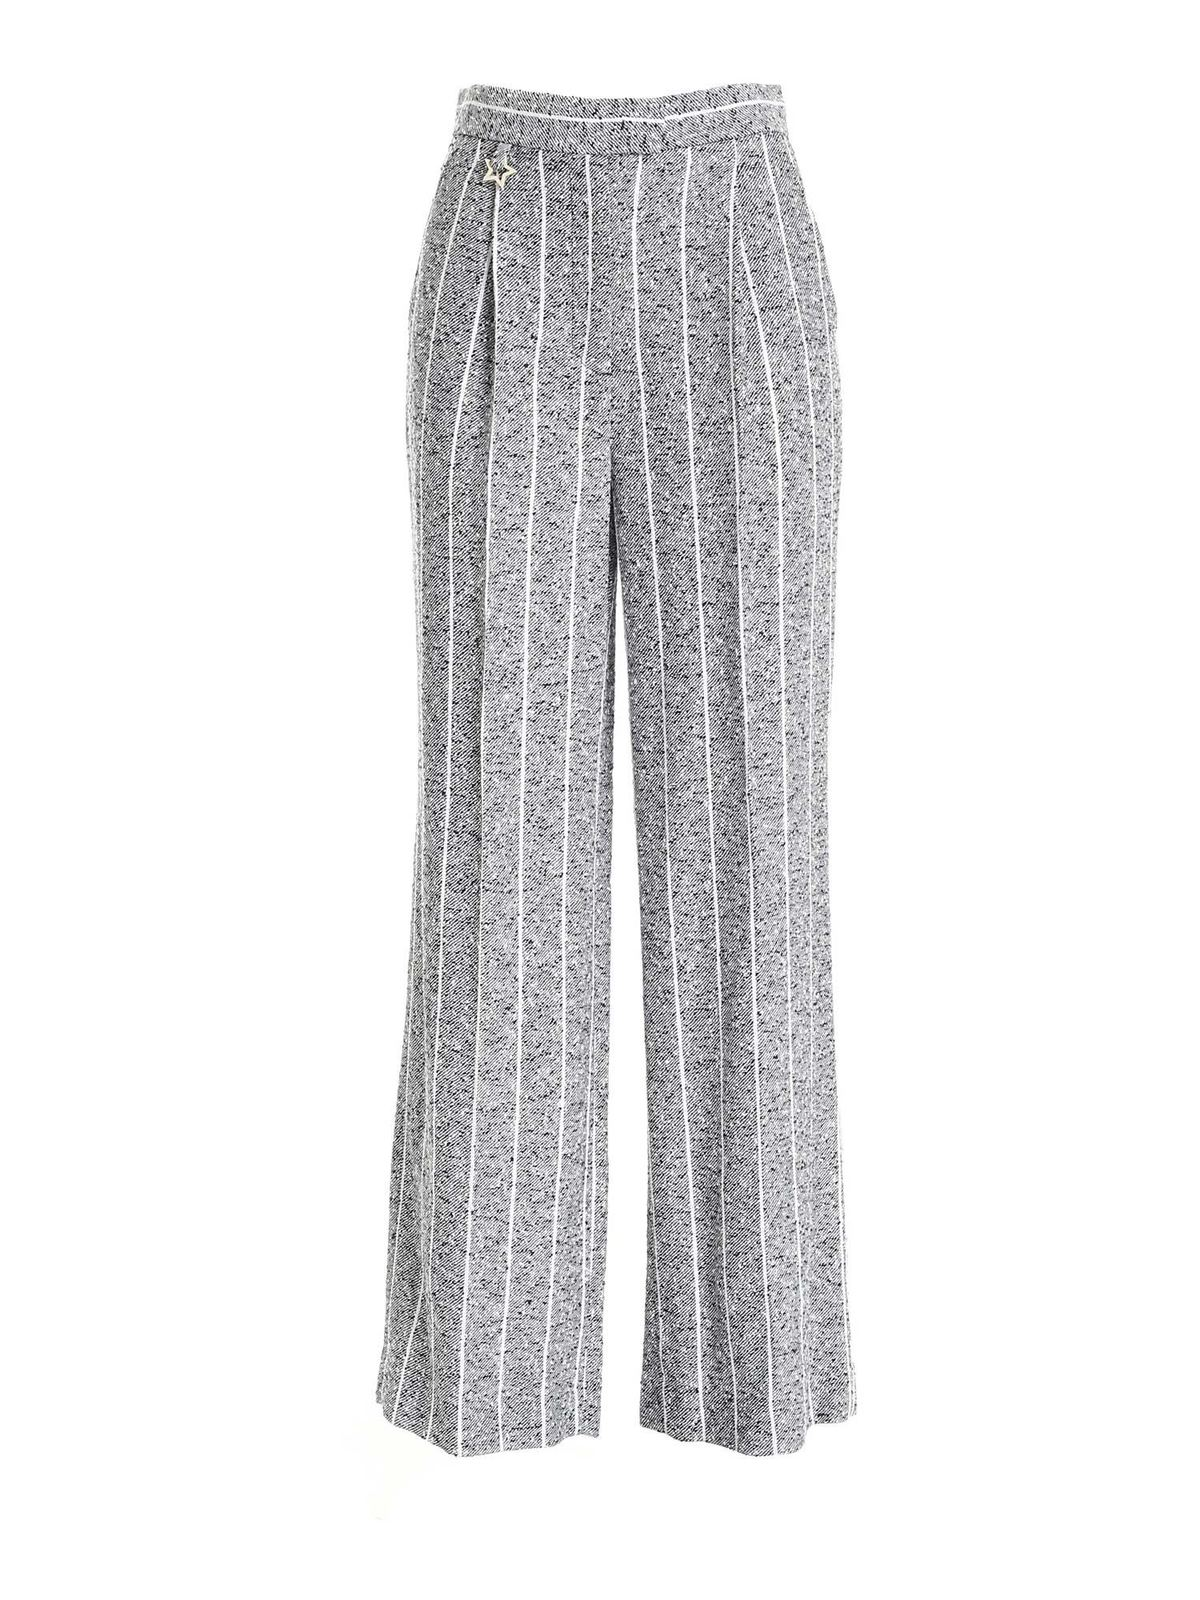 Lorena Antoniazzi PINSTRIPE PATTERN PANTS IN BLUE AND WHITE